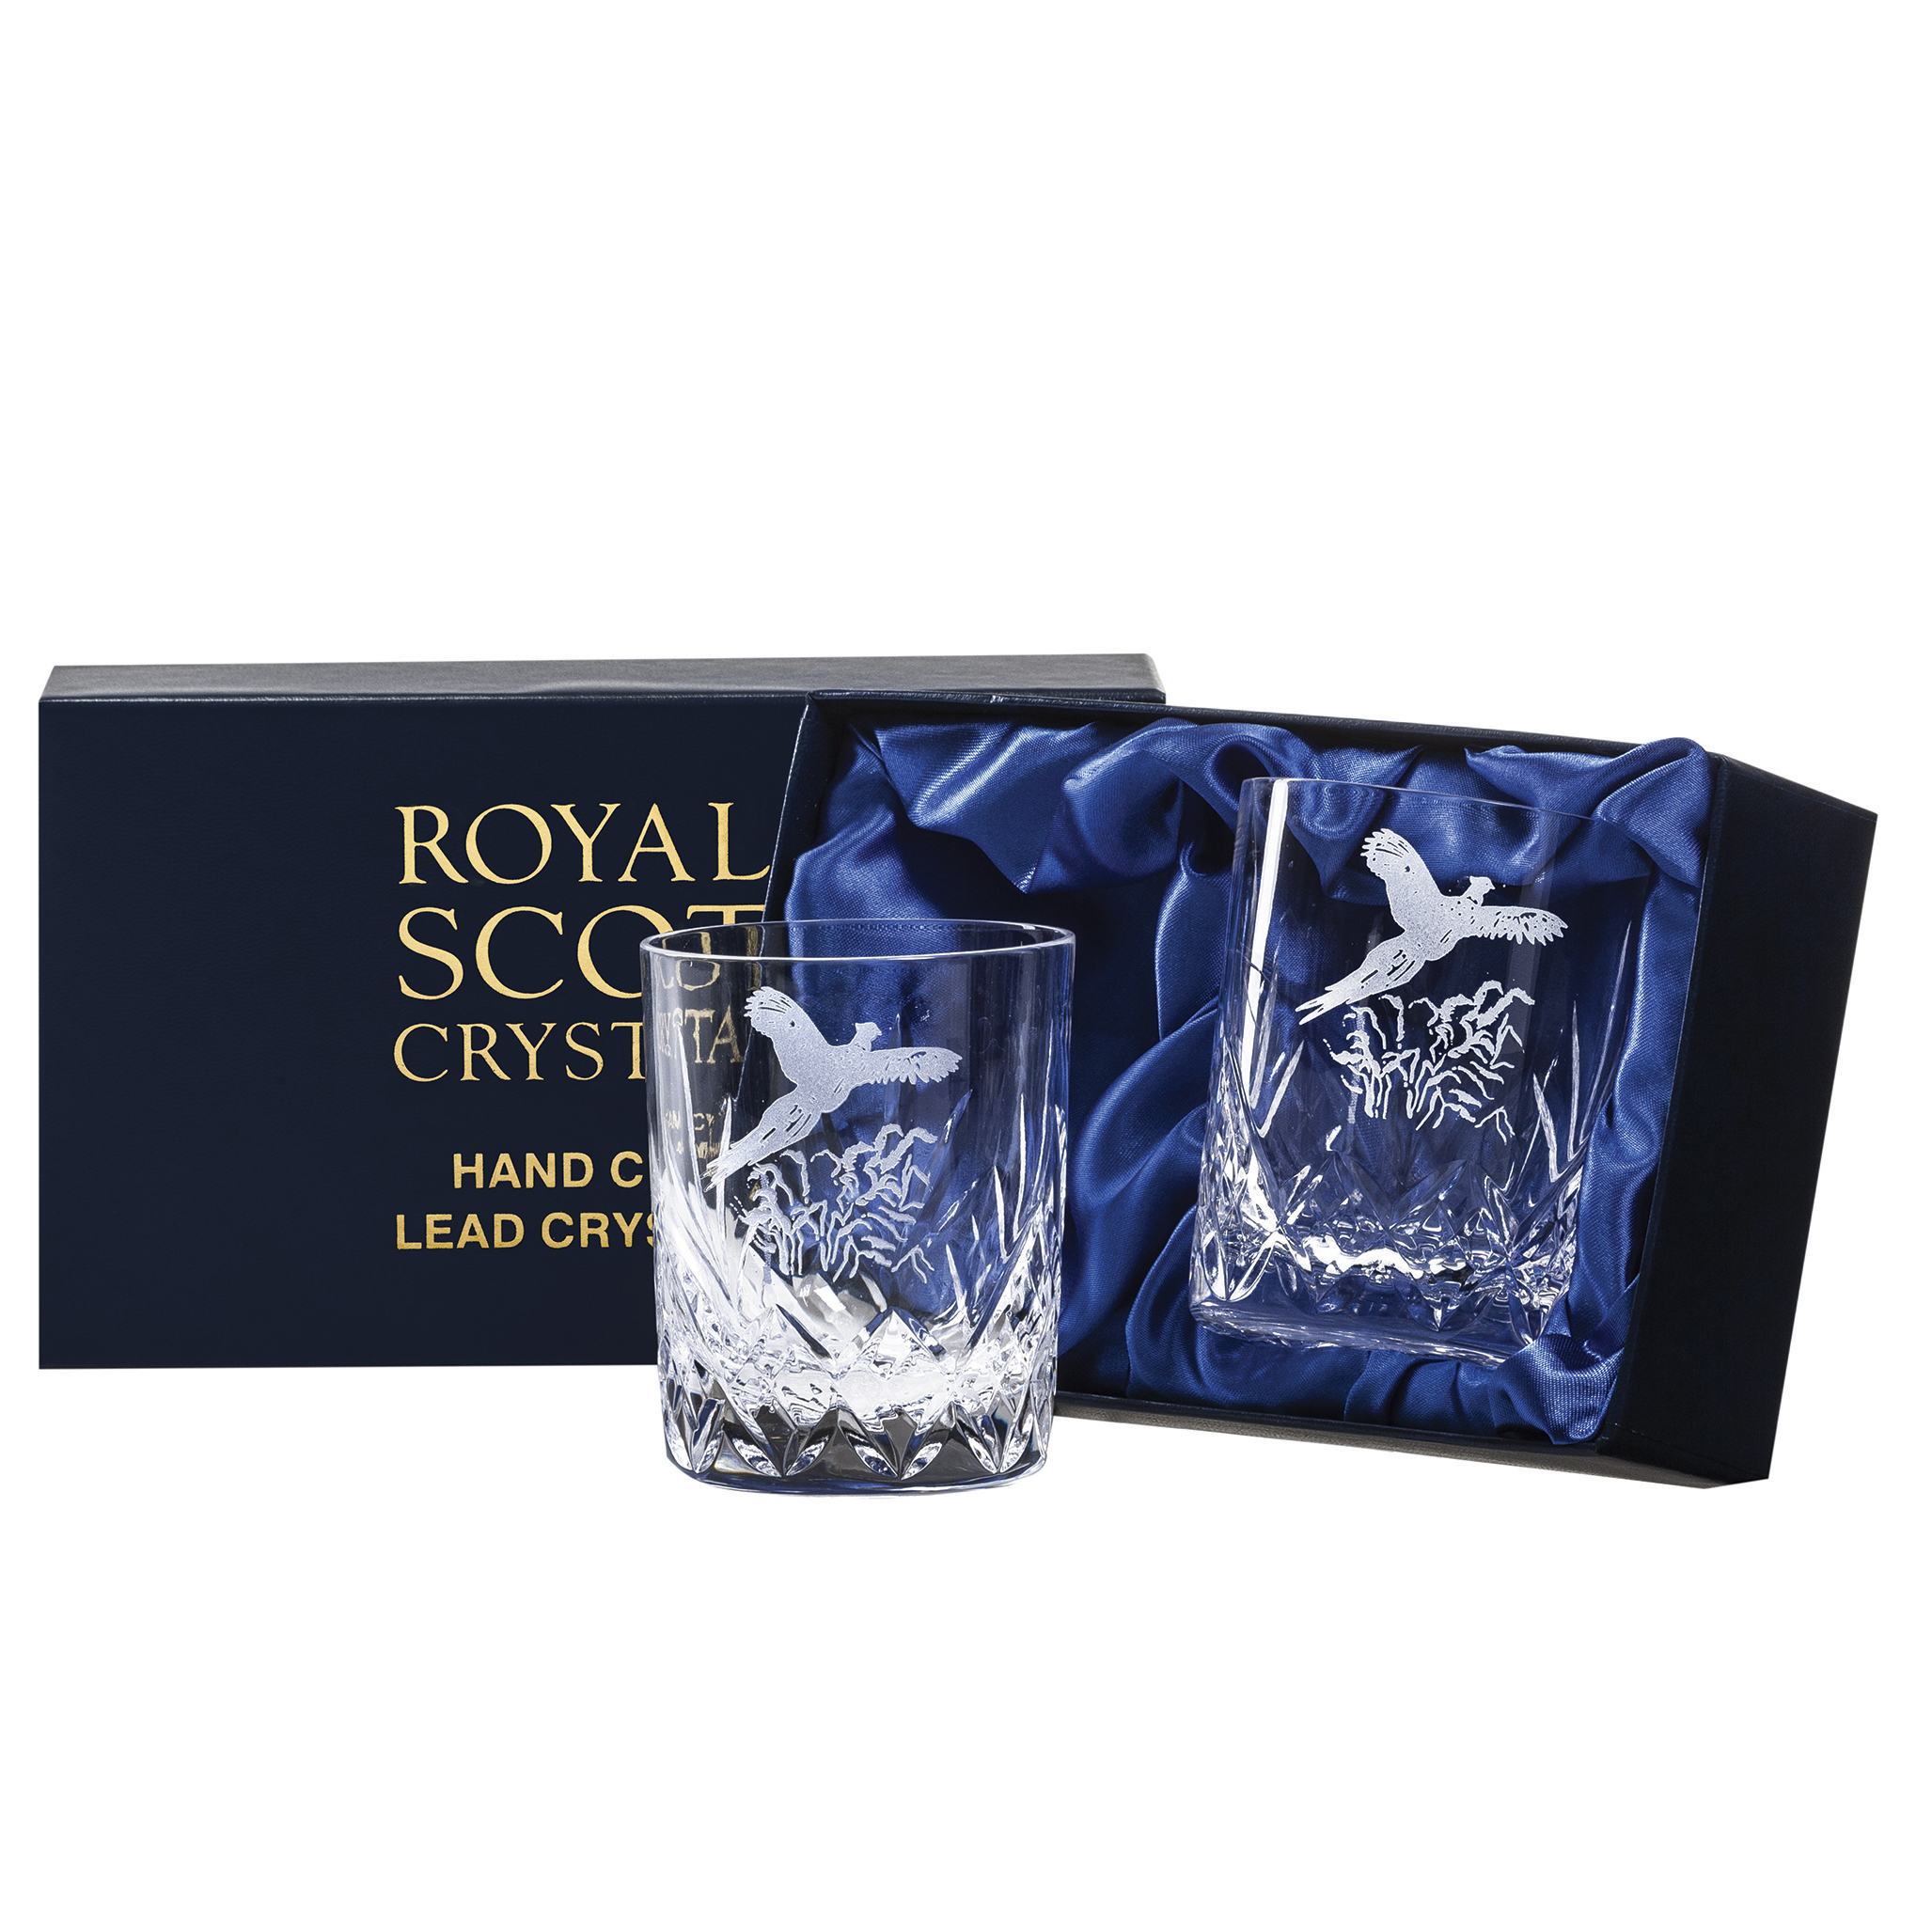 Royal Scot Crystal – 2 Whisky (small) Tumblers Hand Cut Highland (with panel for engraving) (Presentation Boxed)